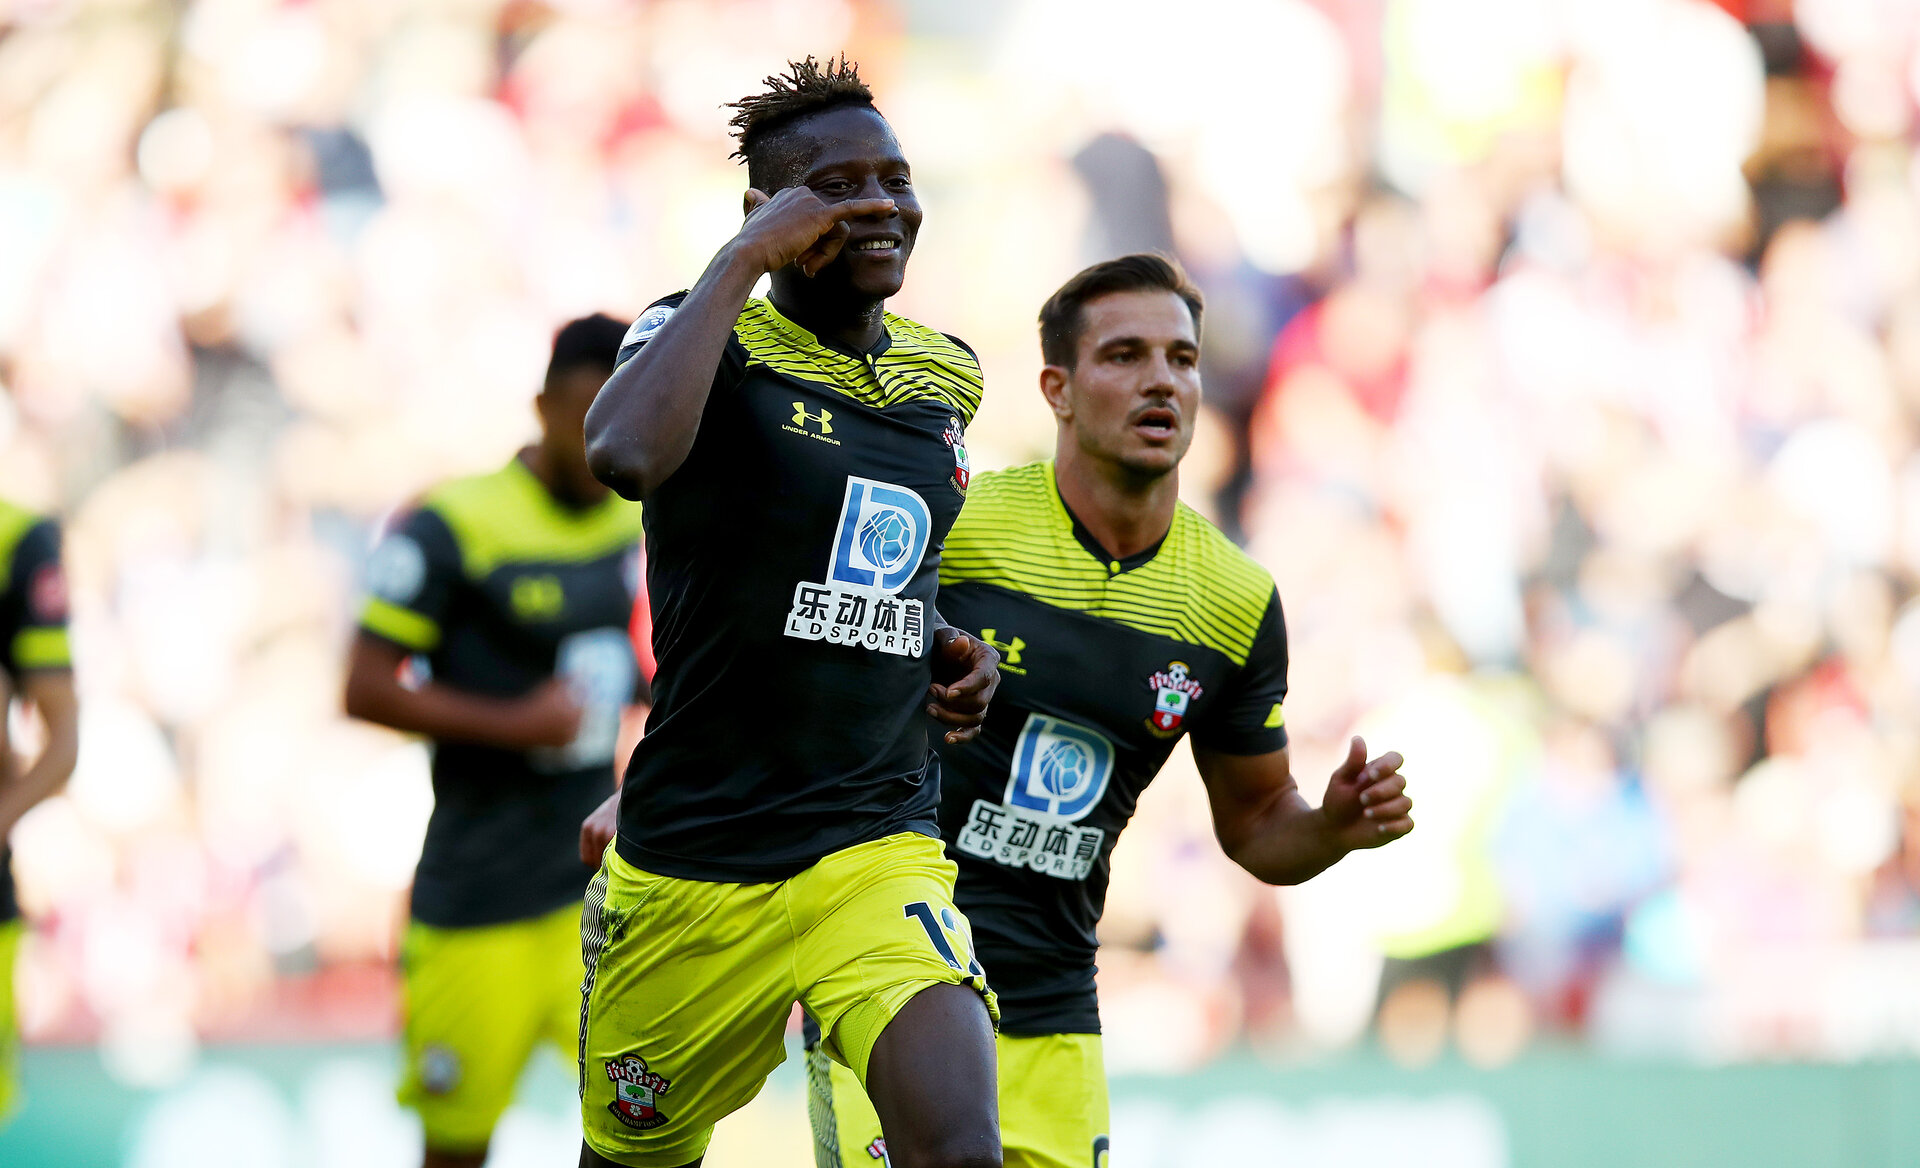 SHEFFIELD, ENGLAND - SEPTEMBER 14: Moussa Djenepo of Southampton celebrates after opening the scoring during the Premier League match between Sheffield United and Southampton FC at Bramall Lane on September 14, 2019 in Sheffield, United Kingdom. (Photo by Matt Watson/Southampton FC via Getty Images)